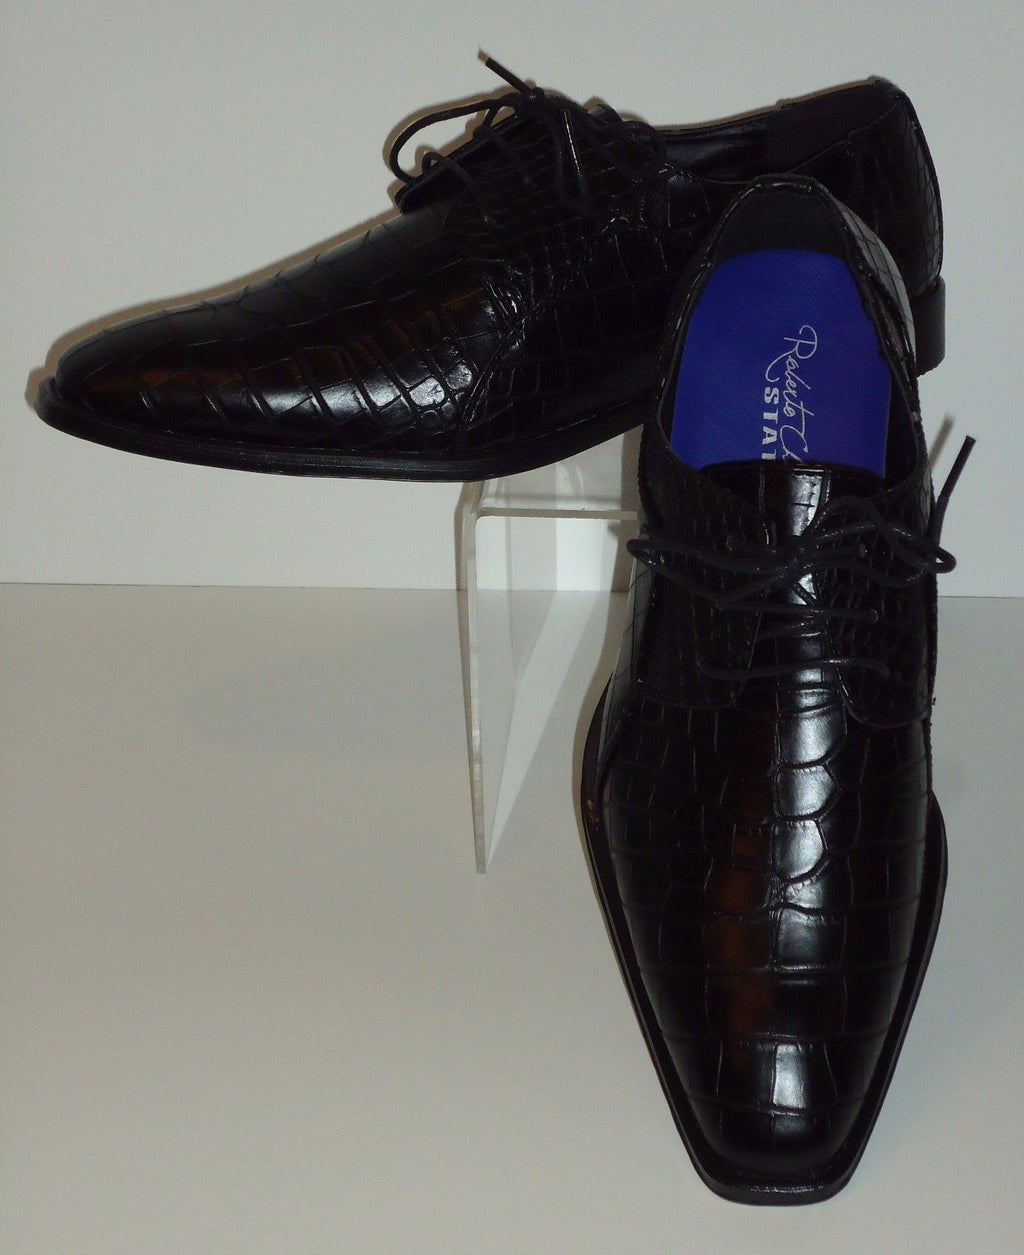 Mens Black Embossed Gator-Look Pointed Toe Dress Shoes Roberto Chillini 6563 - Nader Fashion Las Vegas